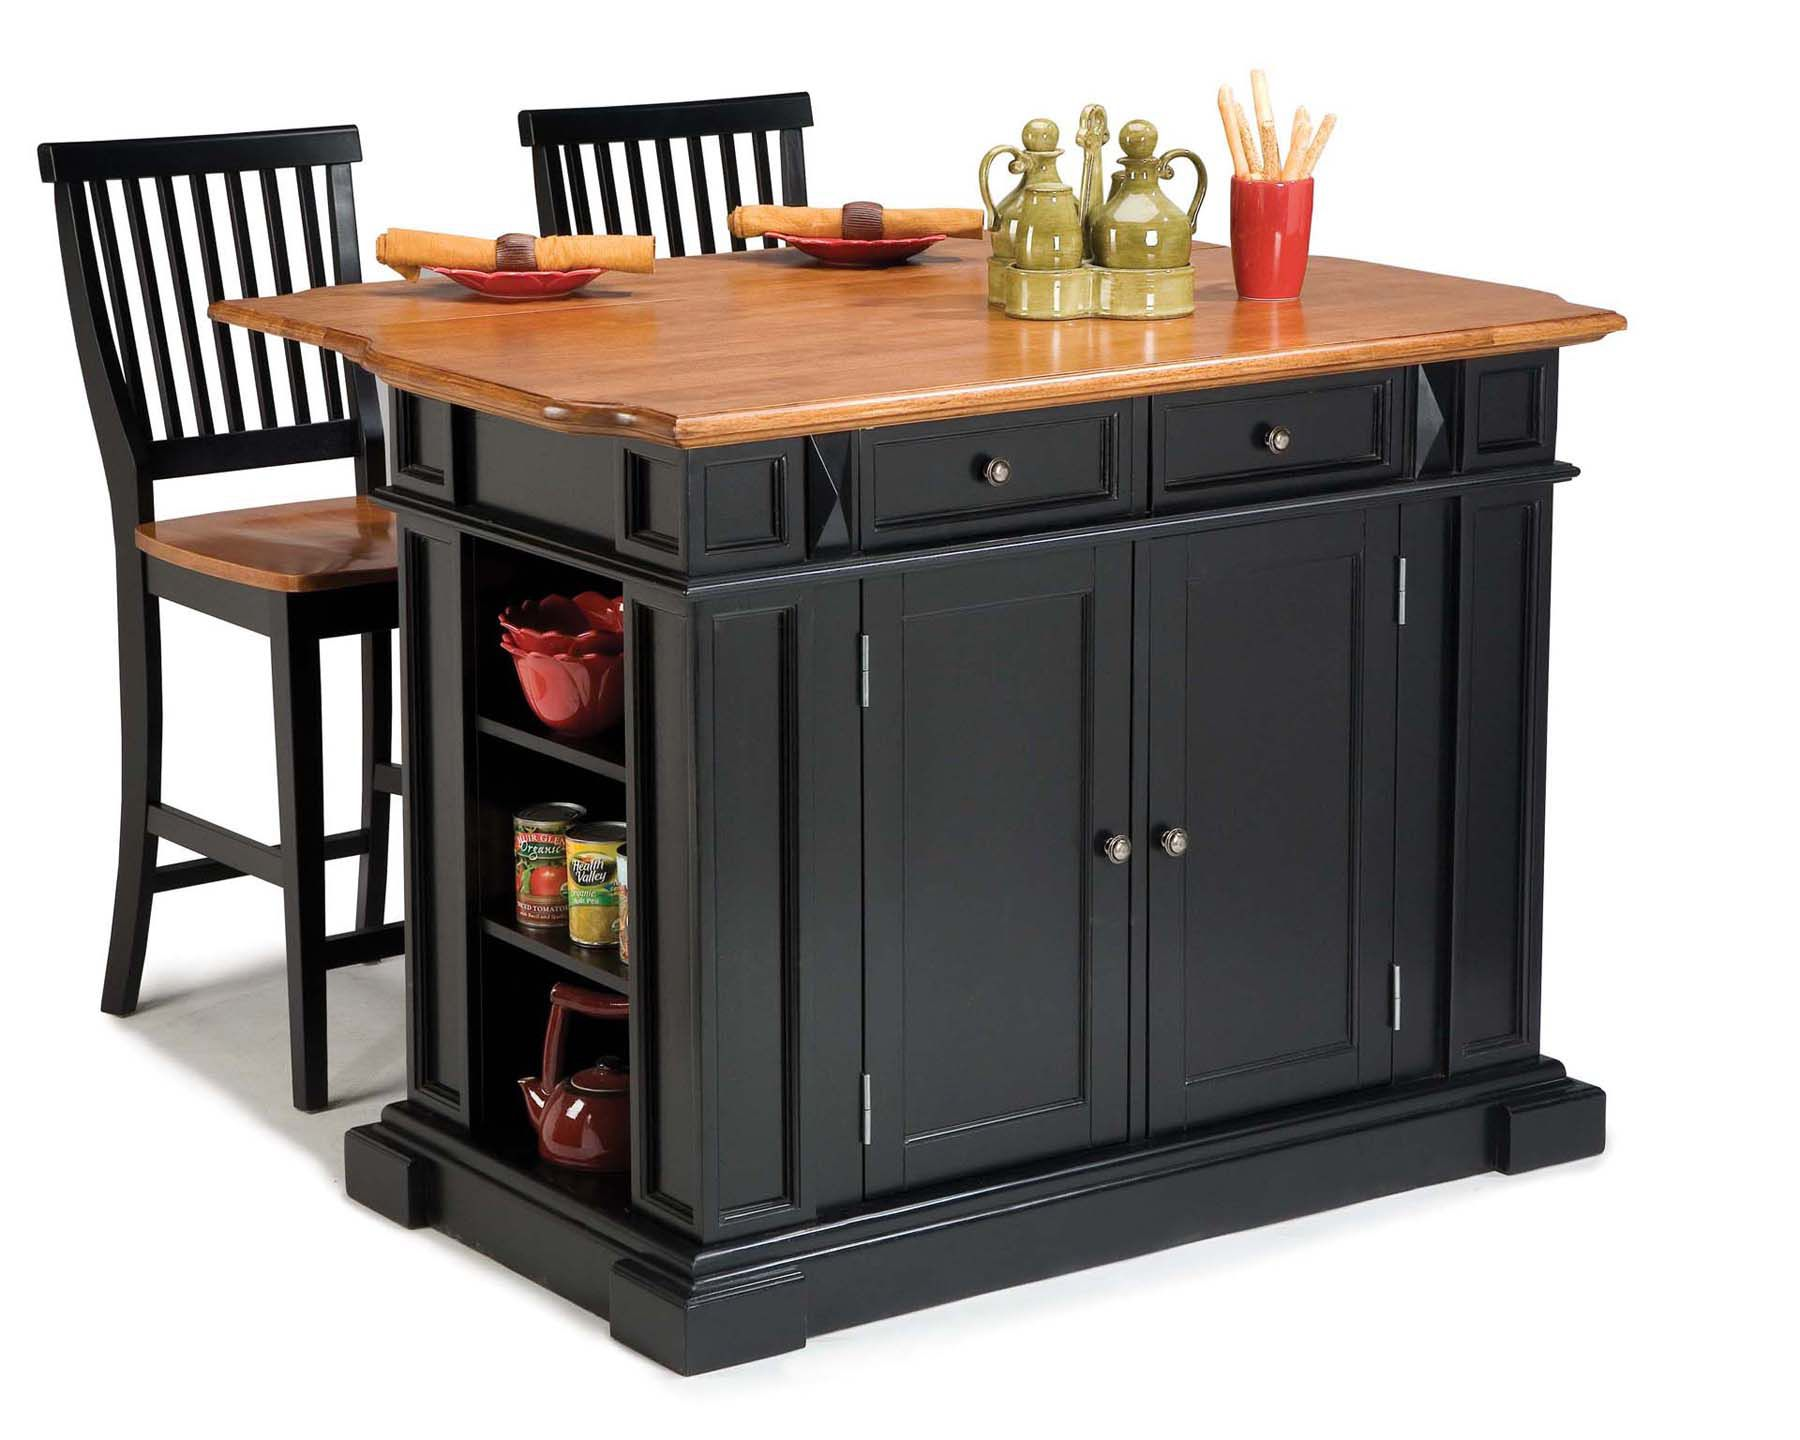 p P kitchen islands with stools Home Styles Kitchen Island and Two Stools Home Furniture Dining Kitchen Furniture Kitchen Carts Islands